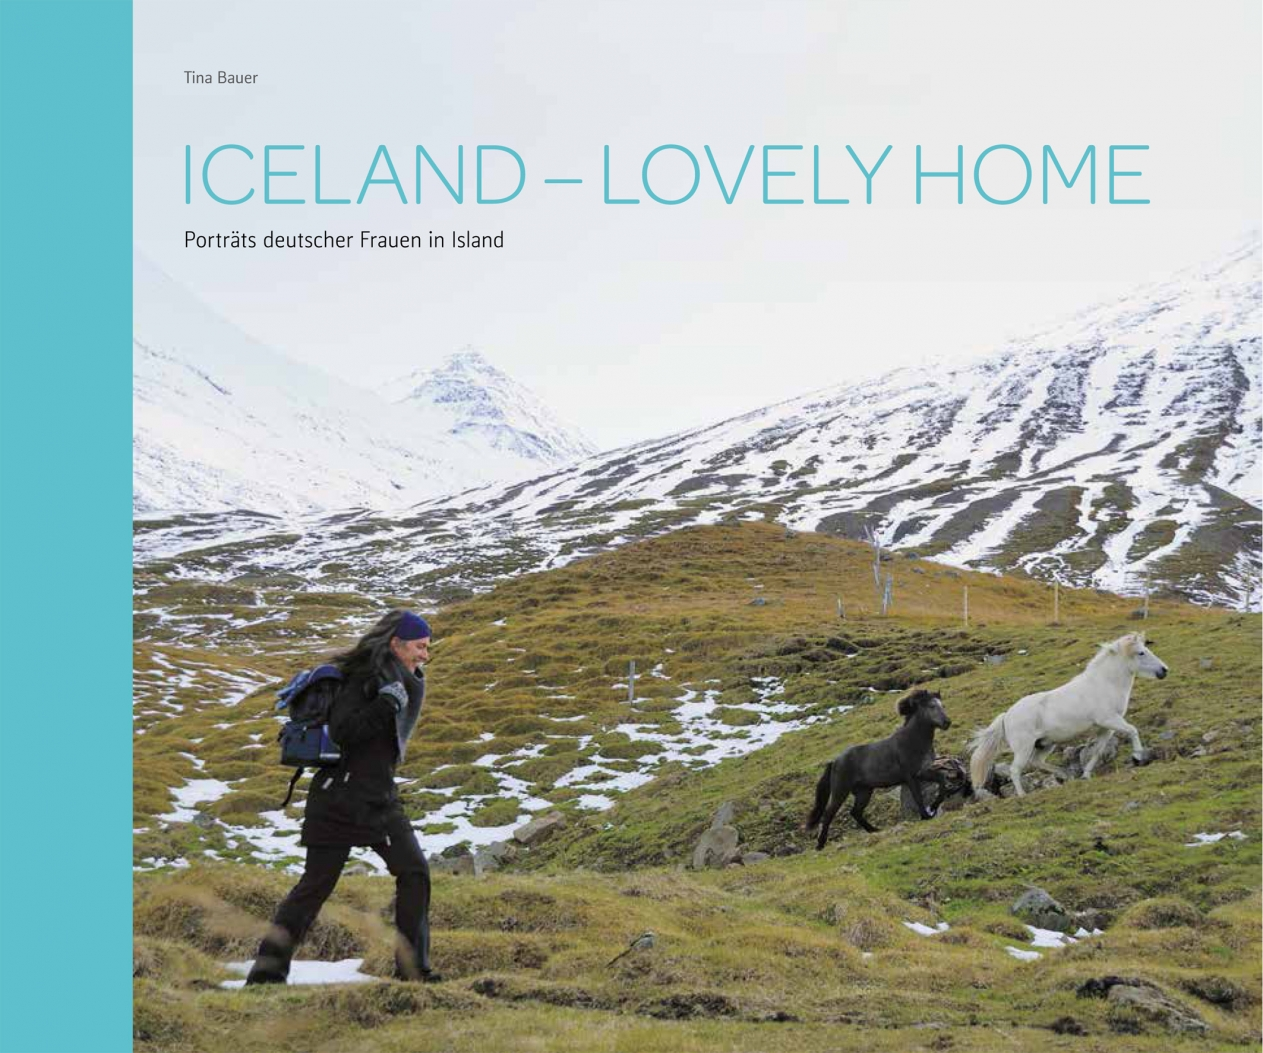 cover_iceland-lovely-home_tina-bauer_2013